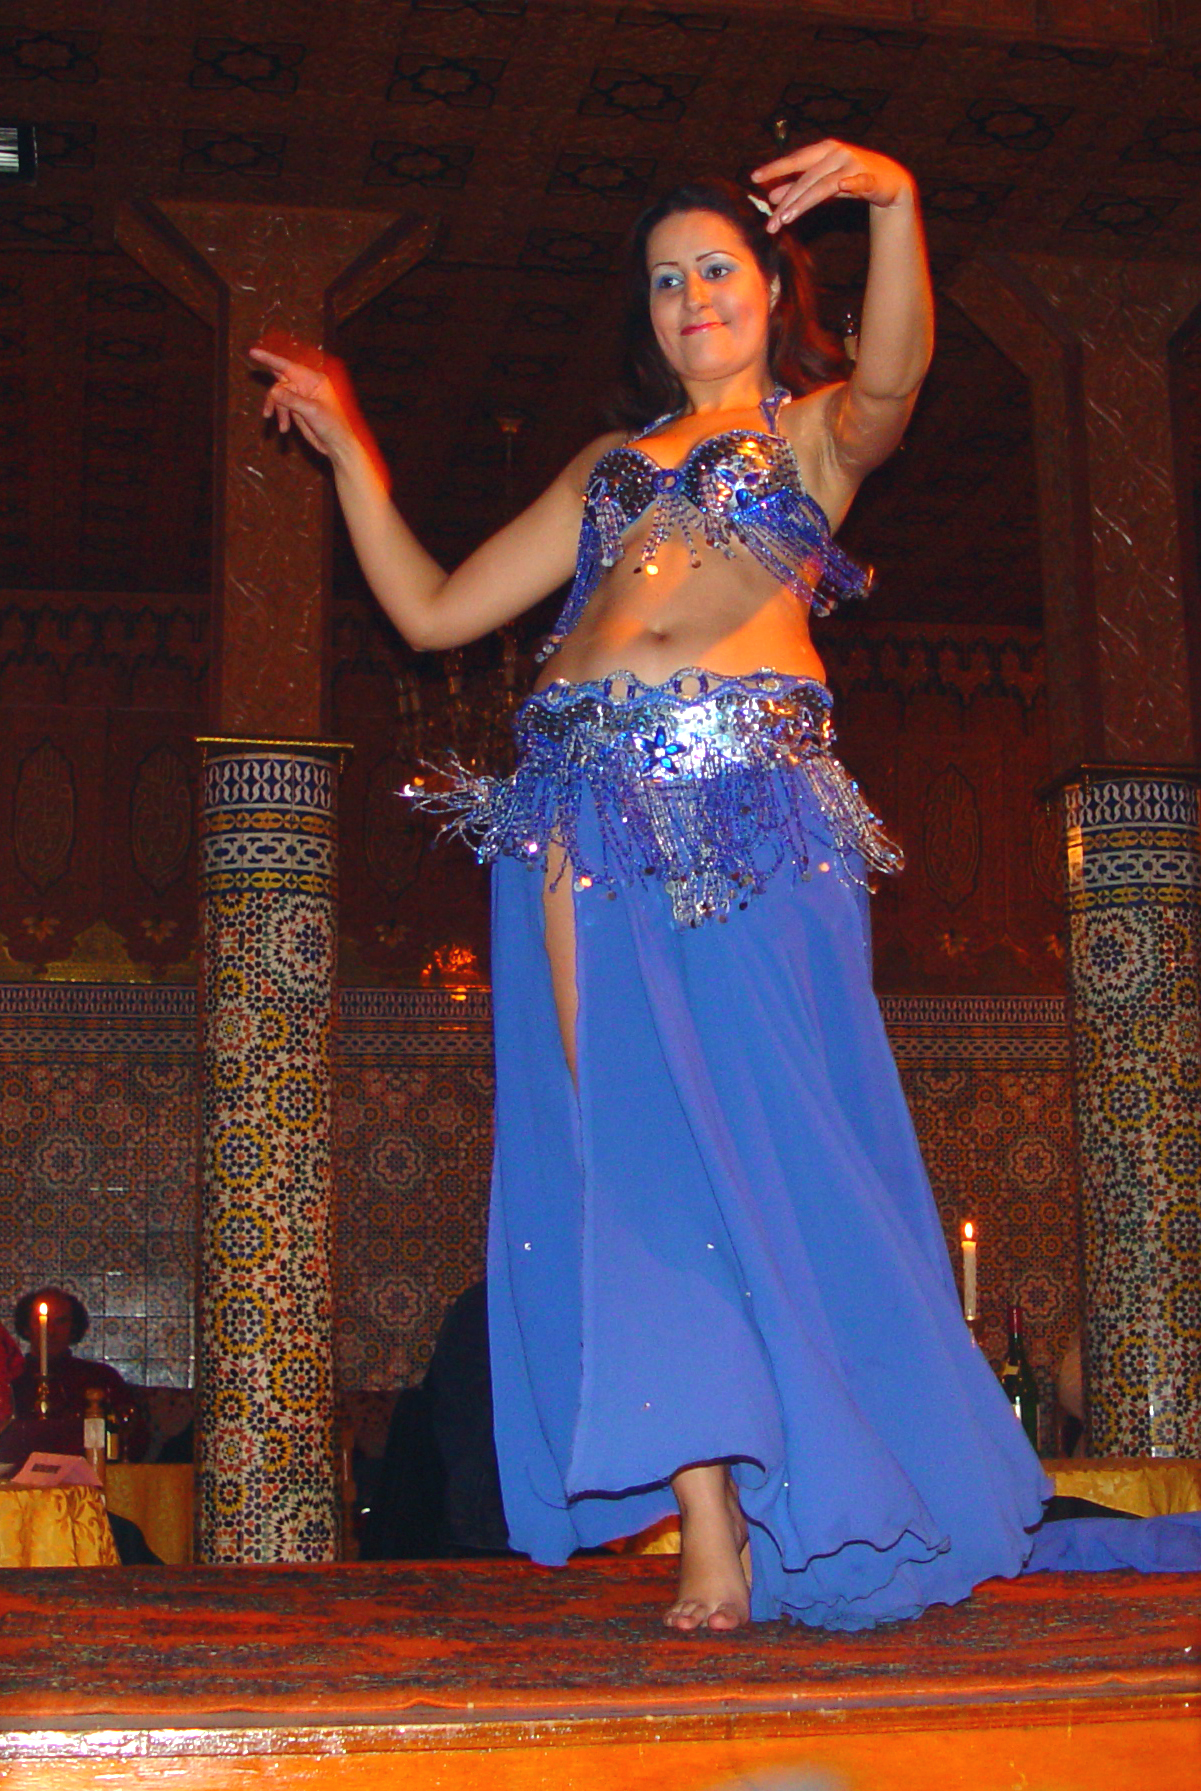 pftw: belly dance